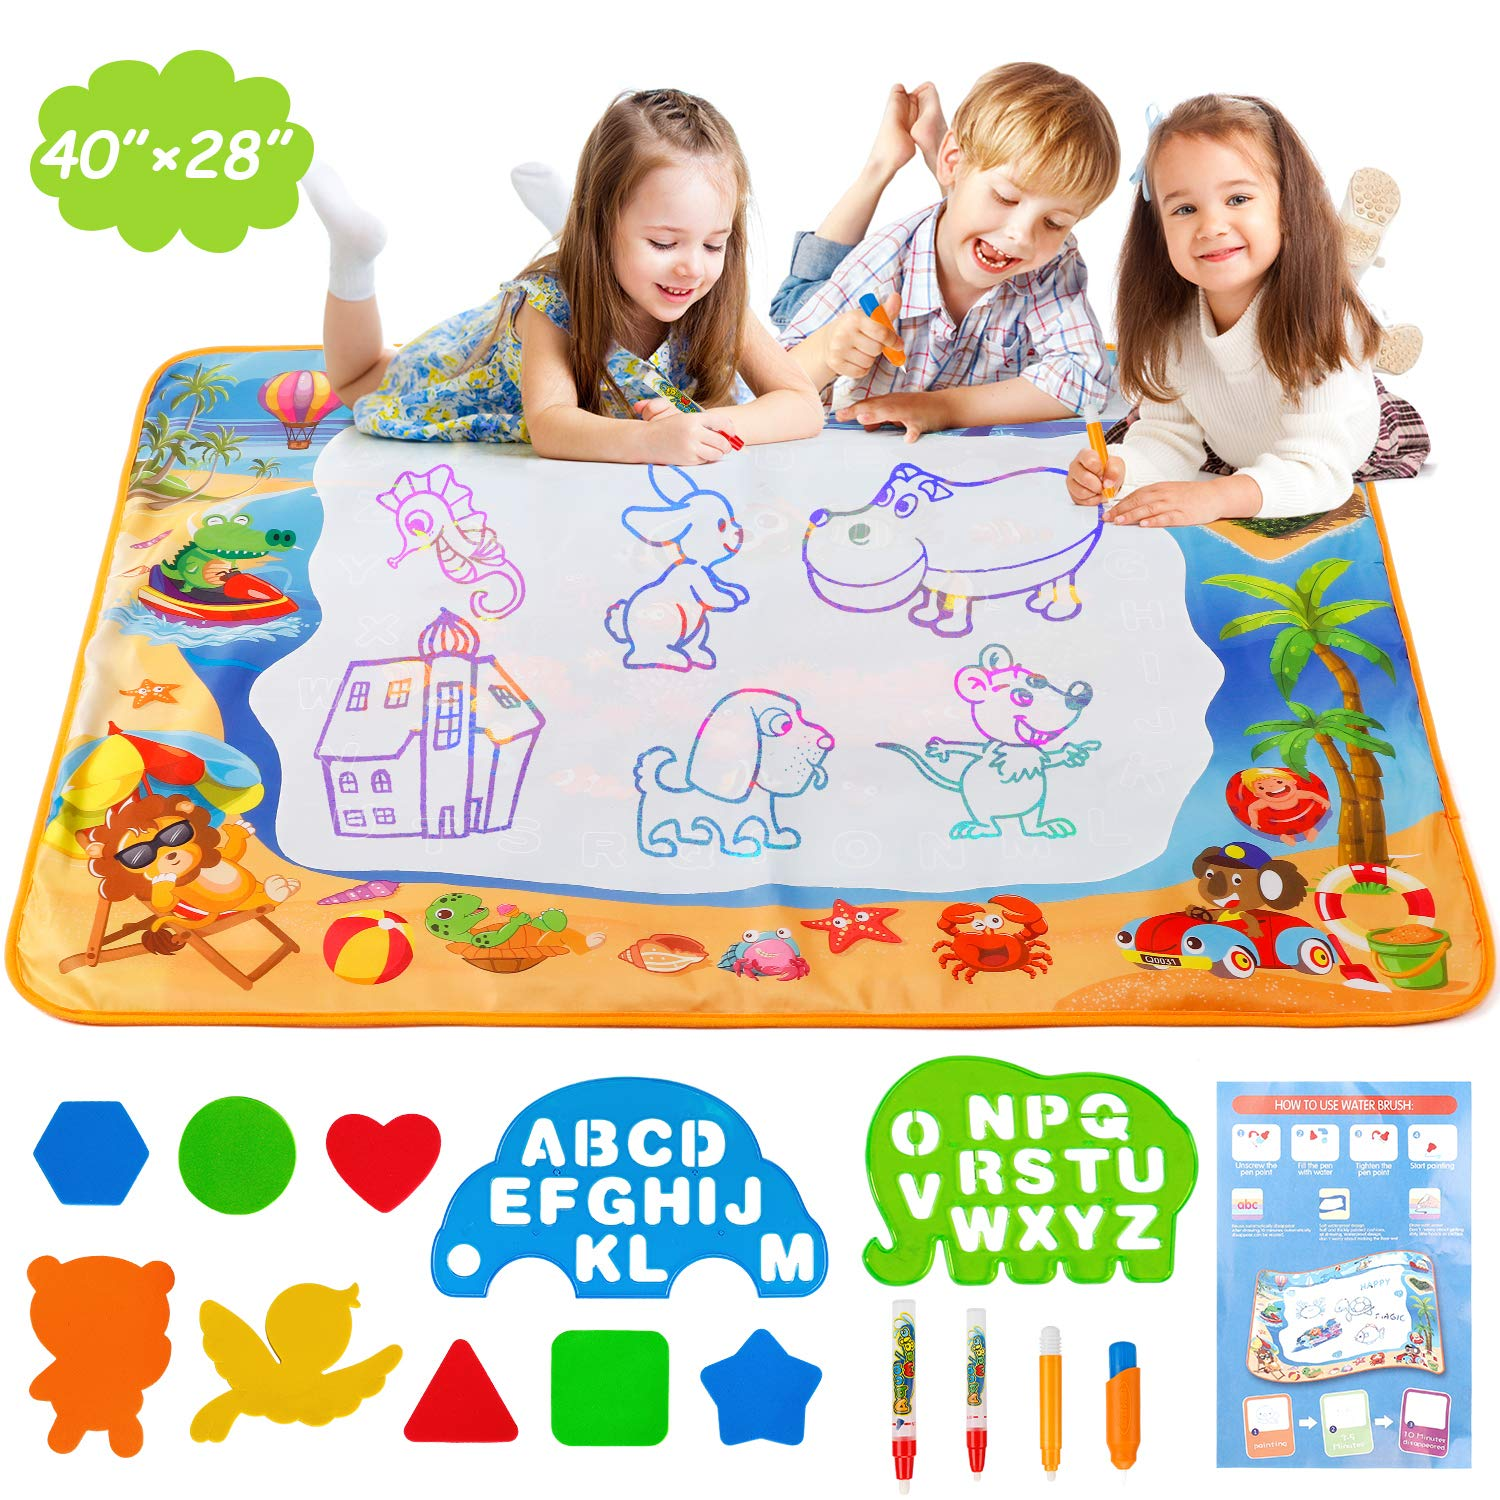 NASHRIO Water Painting Doodle Mat, Educational Drawing Toys for Age 3 4 5 6 7 8 9 10 11 12 Year Old Girls Boys Age Toddler Gift, No-Mess Activity Mat with Water Markers, Stencils and Shapes